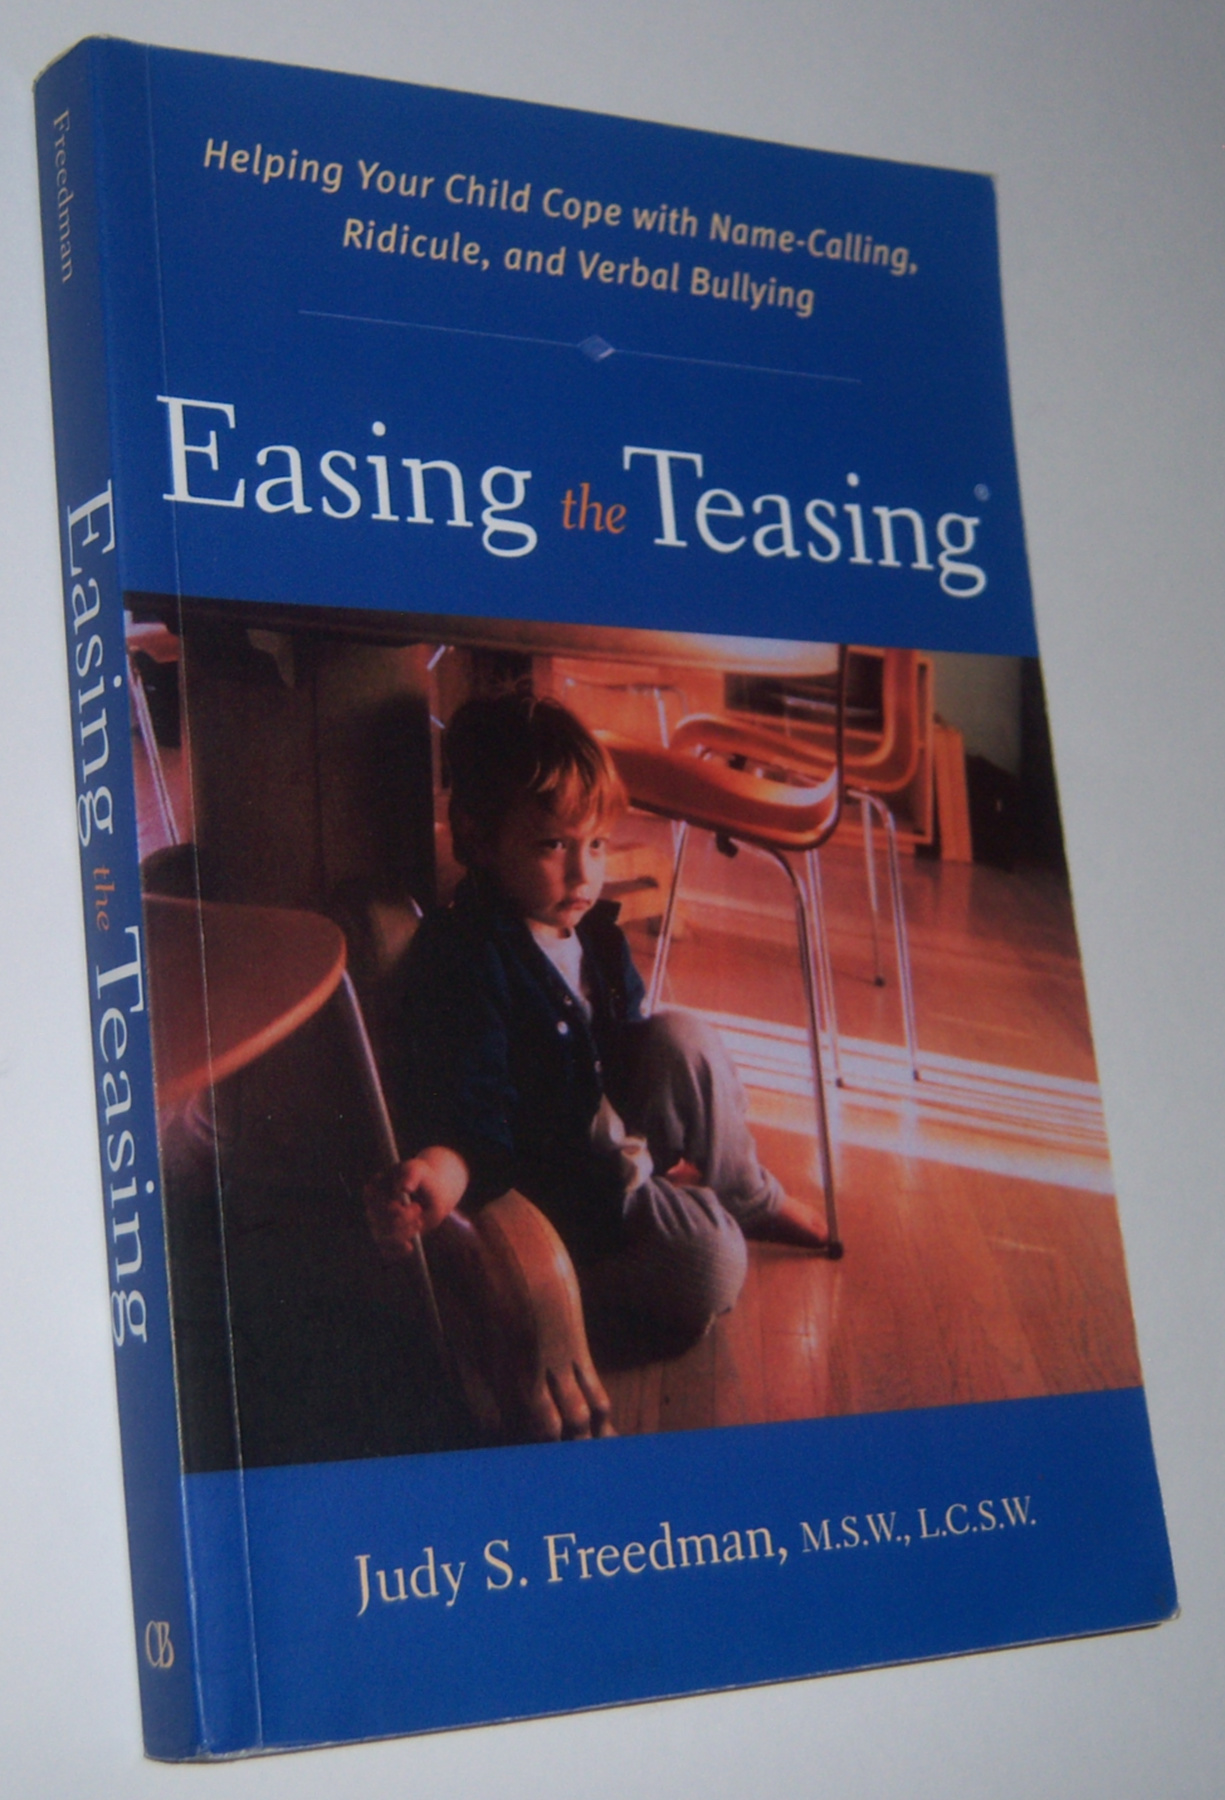 Image for EASING THE TEASING : Helping Your Child Cope with Name-Calling, Ridicule, and Verbal Bullying